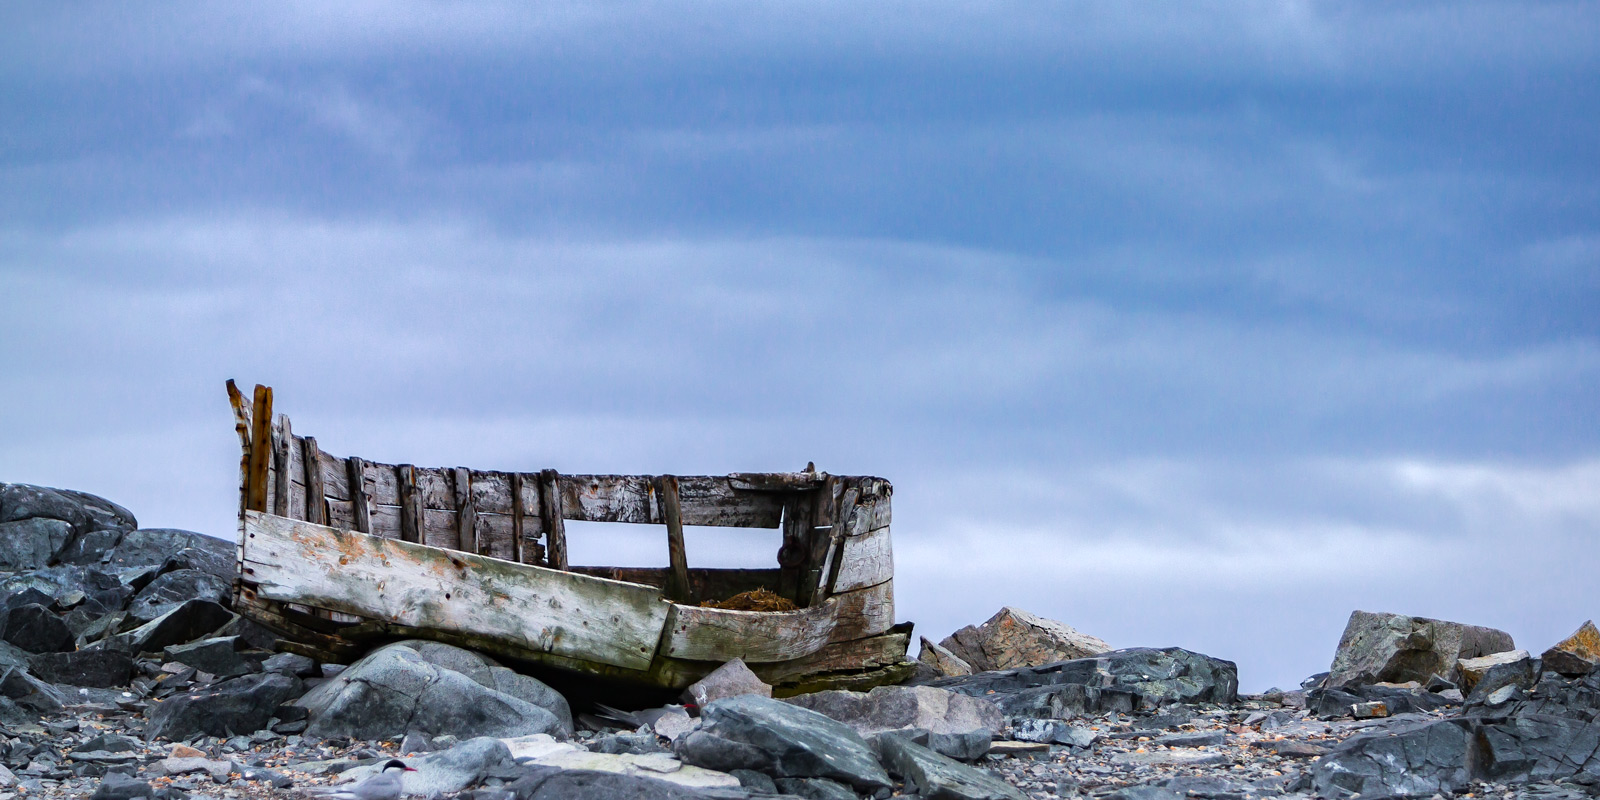 A Limited Edition, Fine Art photograph in Antarctica of the remains of an old wooden whaling boat that has been on the rocks...